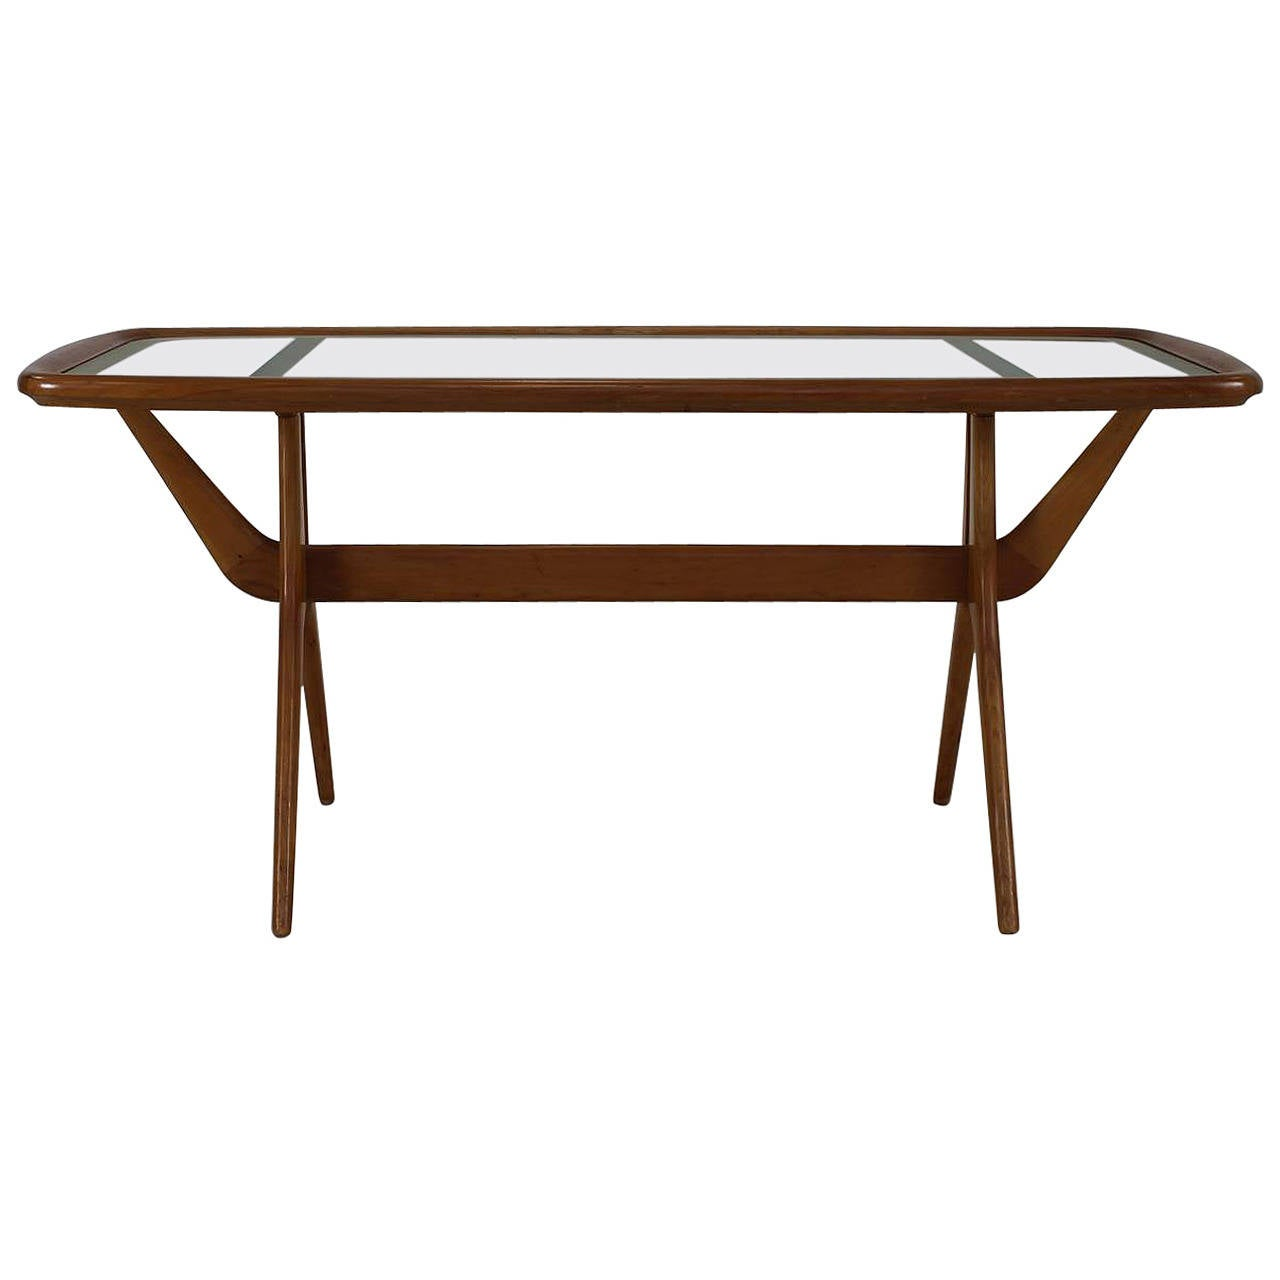 sculptural walnut italian design coffee table for sale at